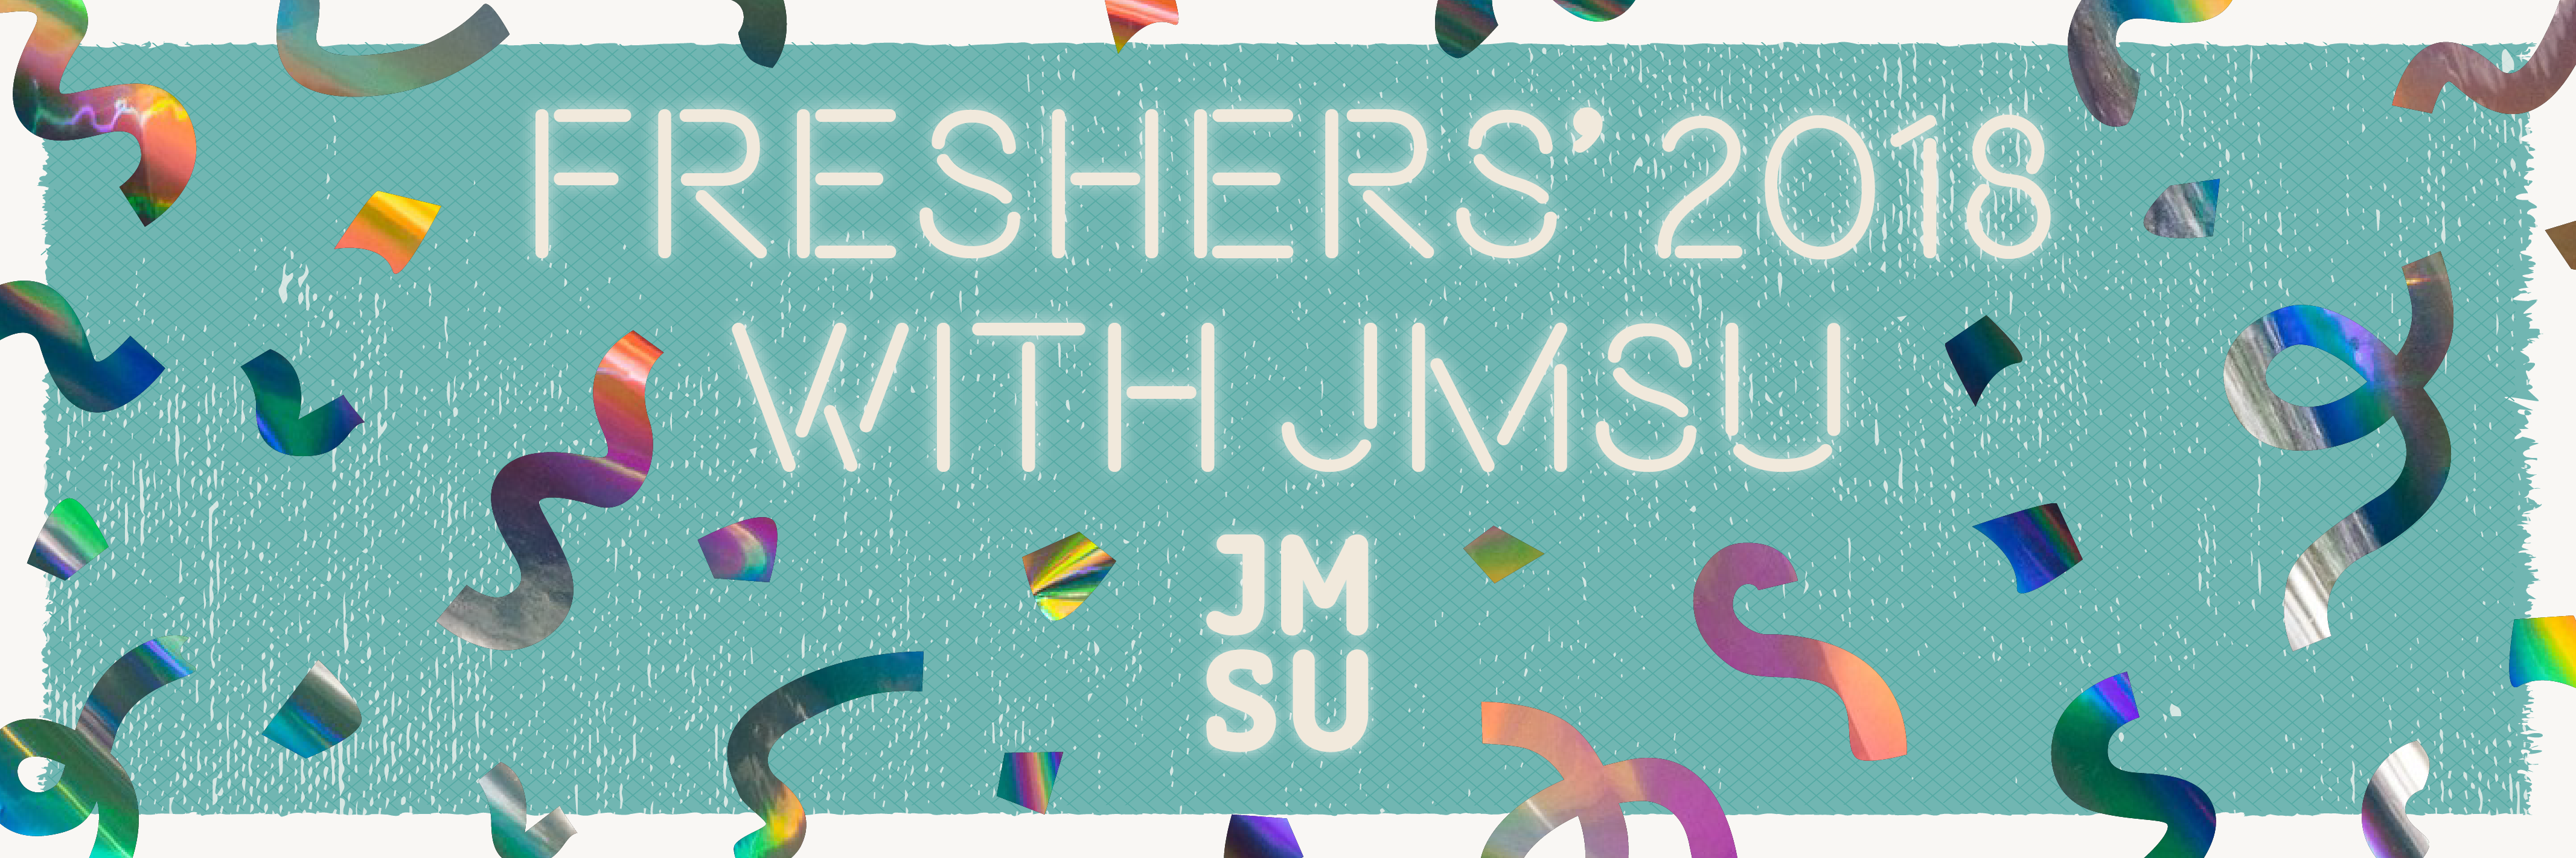 Website freshers banner